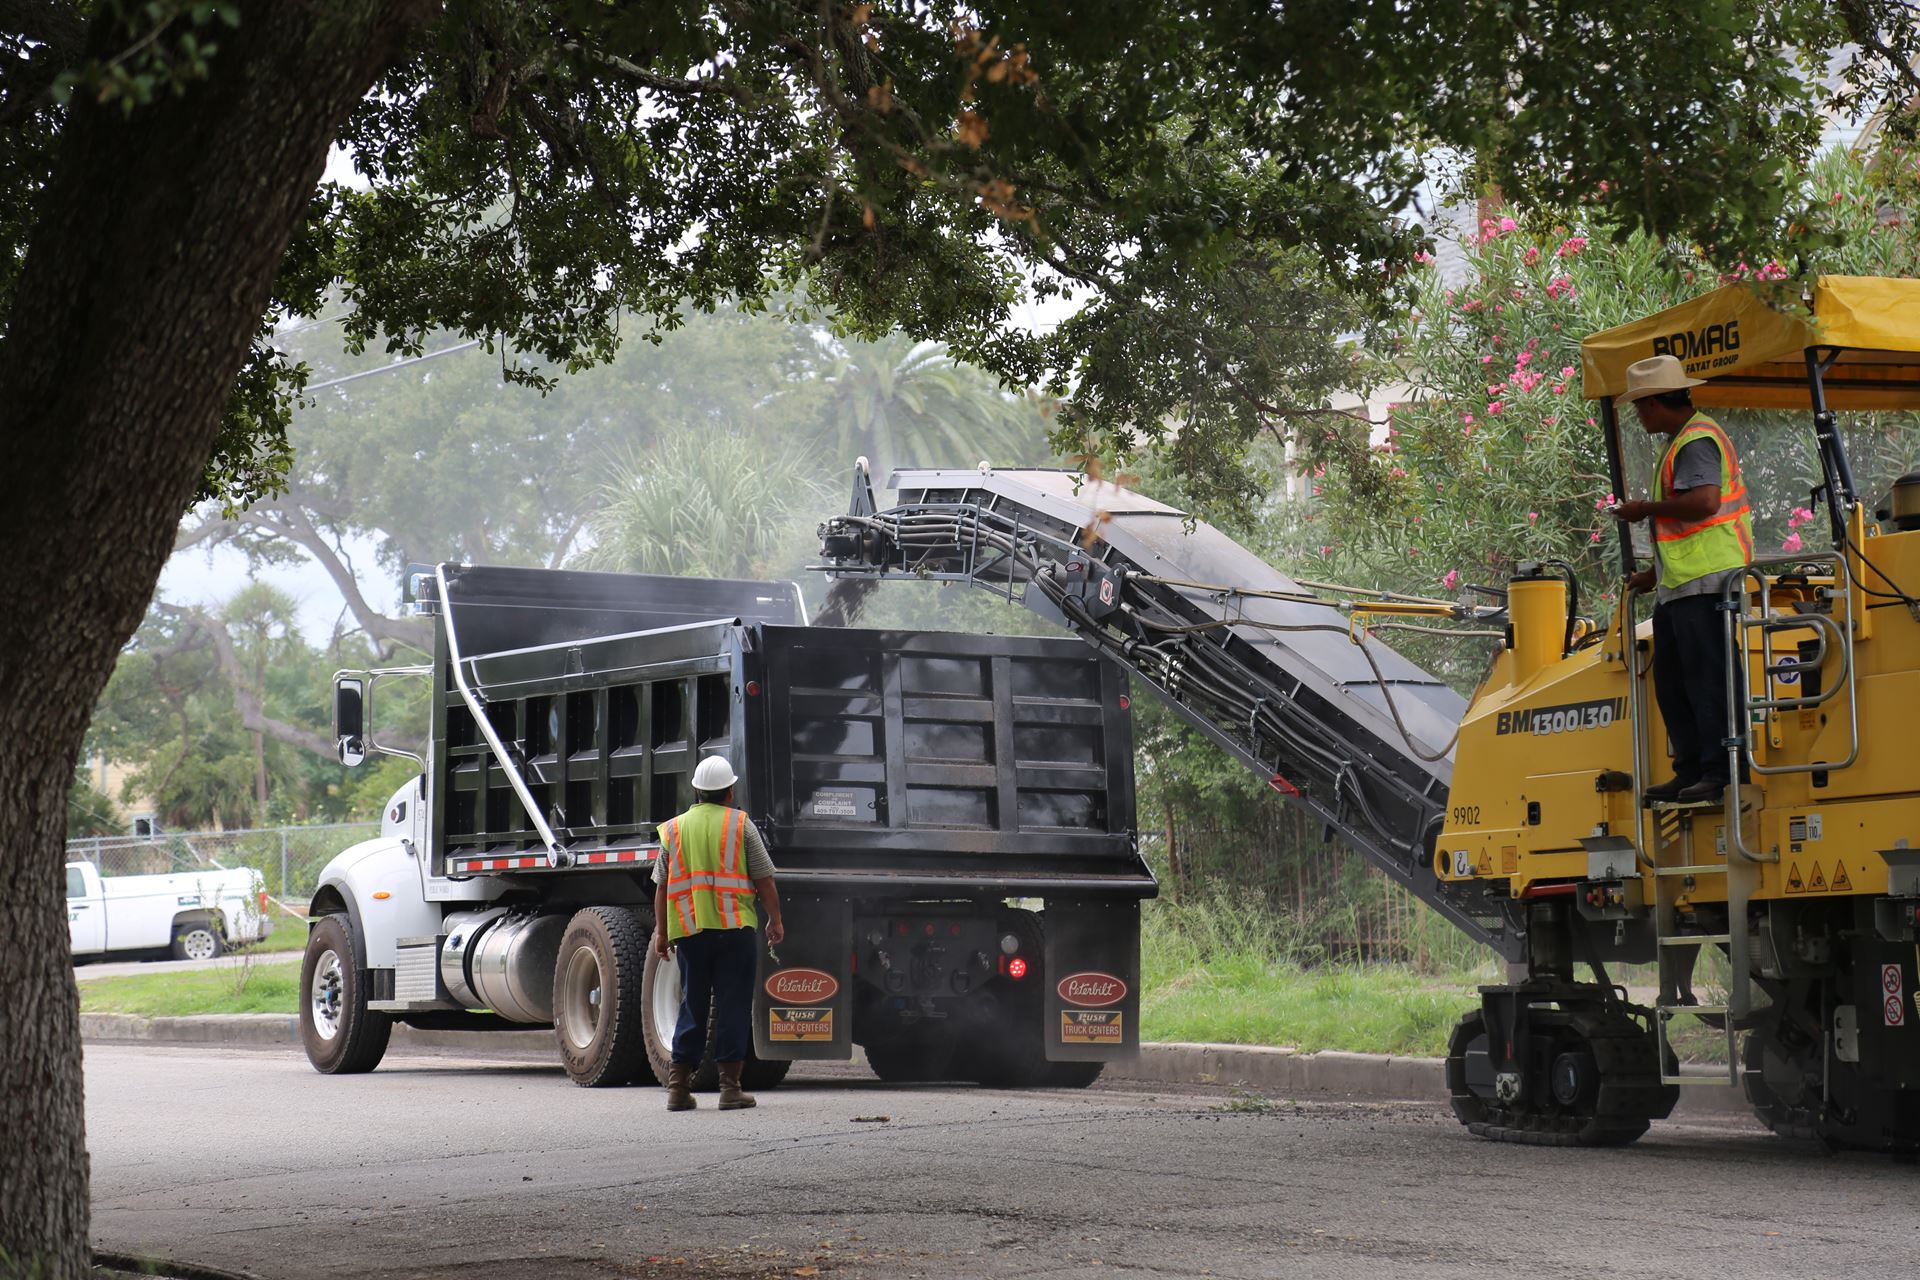 Pavement Milling Machine Dumping Asphalt into Dump Truck